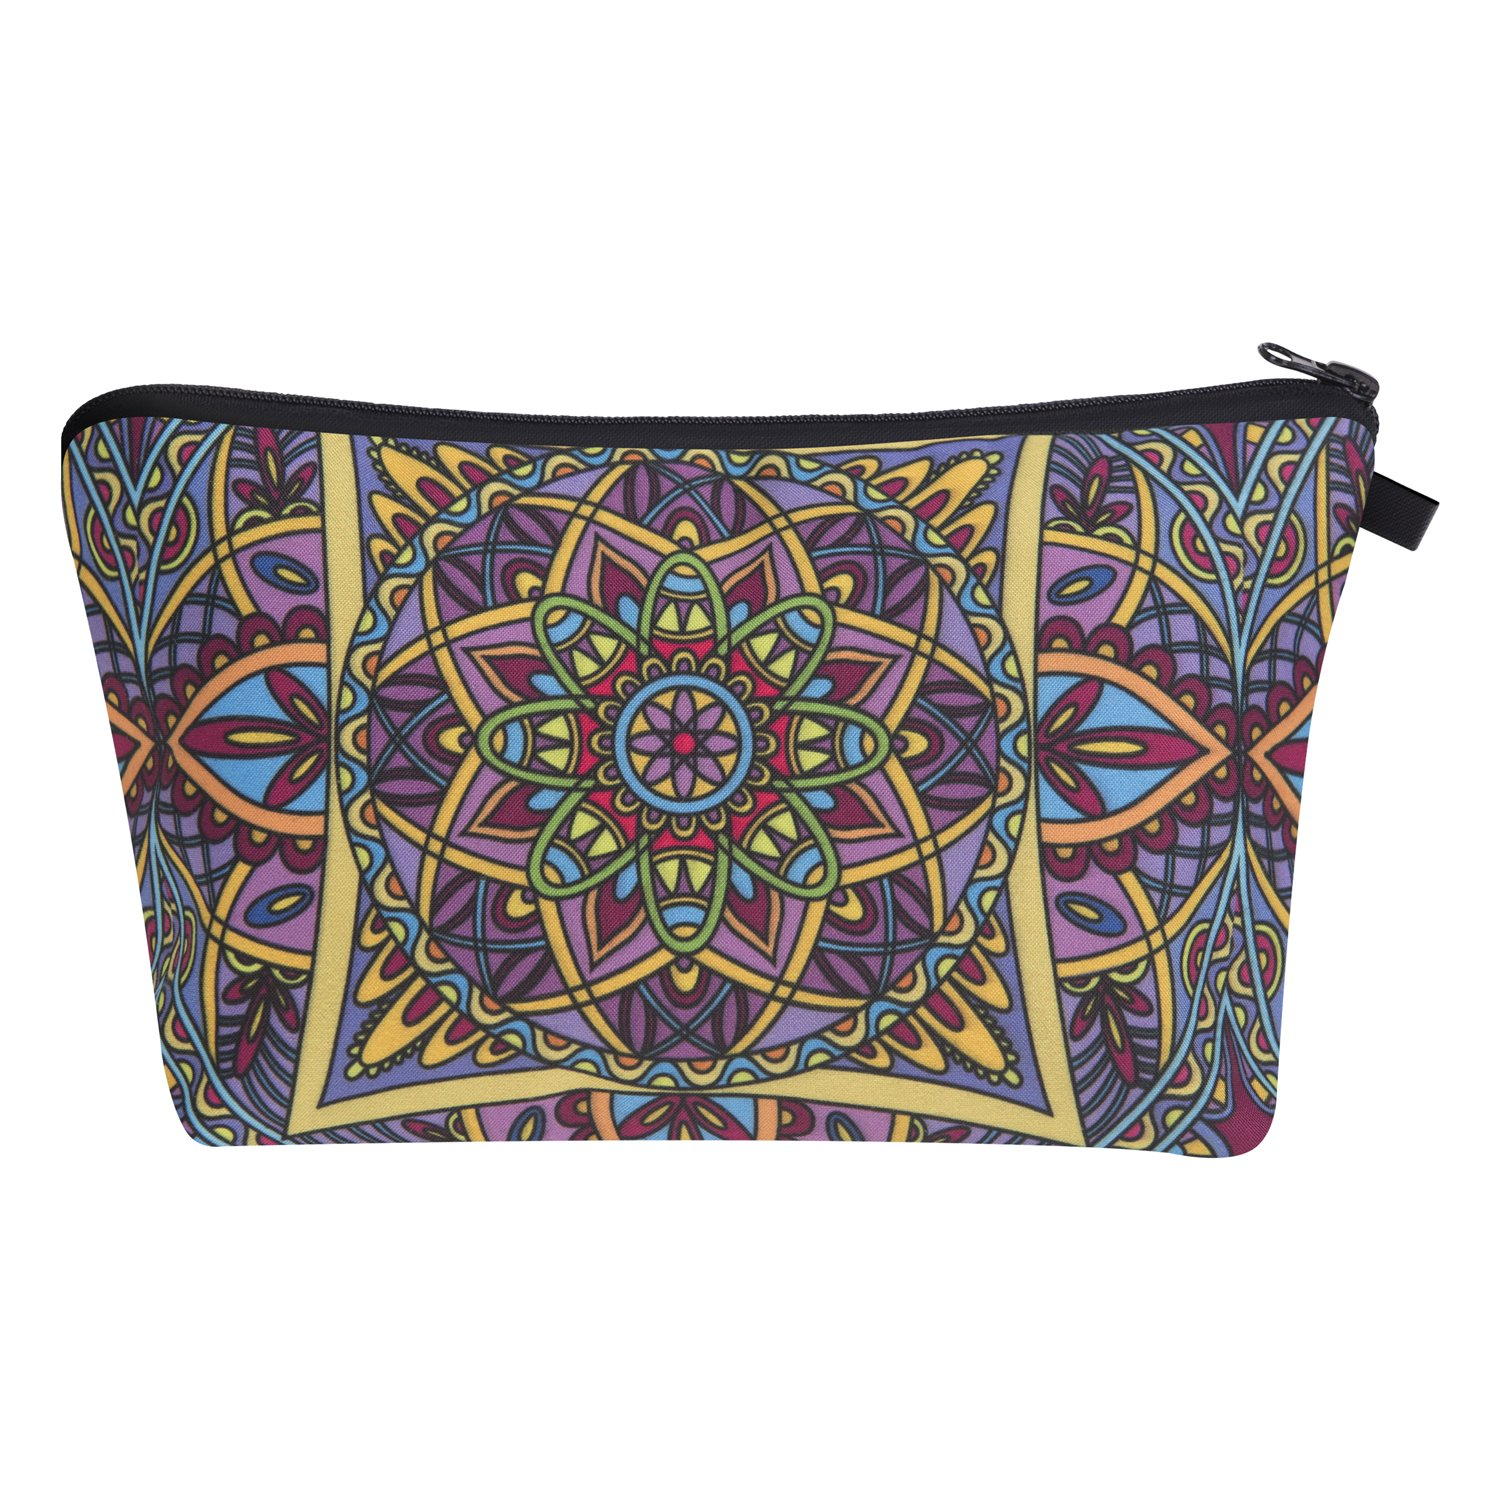 Hanessa Kosmetiktasche Kulturbeutel Beutel Mäppchen Tüte Federmappe Zipper Make Up Bag Reißverschluss All Over Full Print Kosmetiktüte Aztek Muster Blau Grün Blüte Mandala SB4